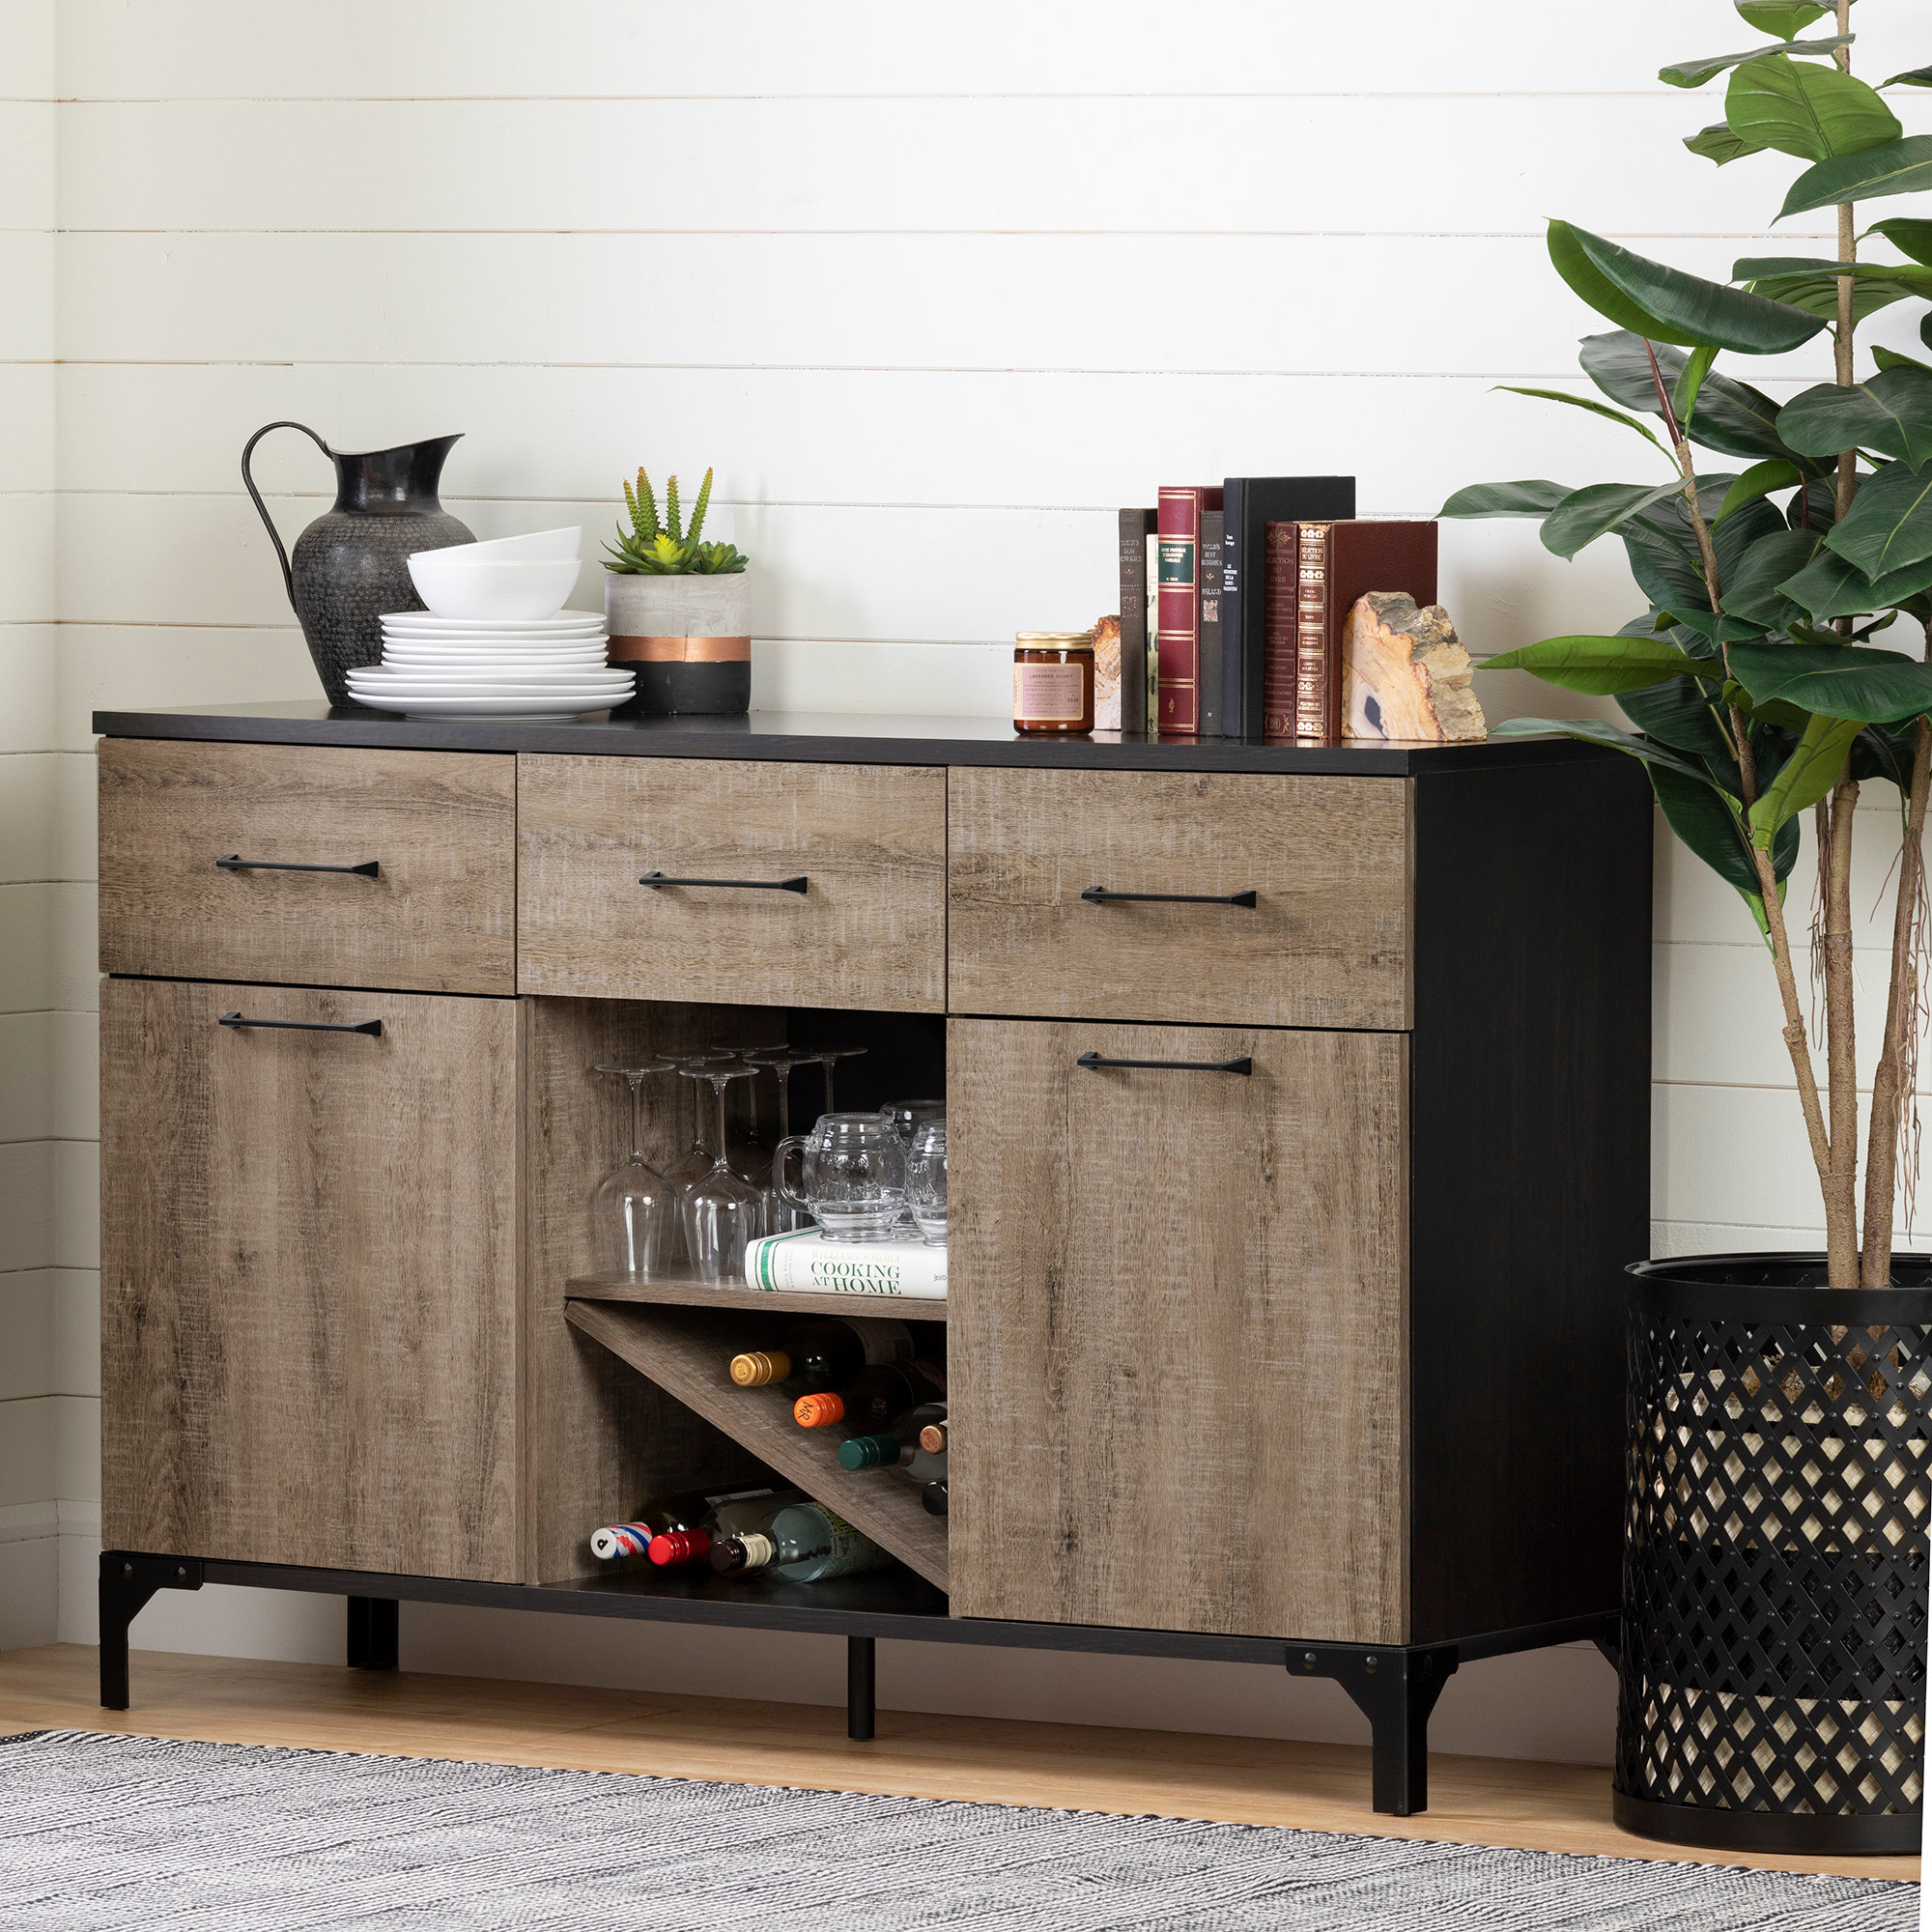 Drawer Equipped Sideboards & Buffets You'll Love In 2019 Pertaining To Joyner Sideboards (Image 9 of 30)